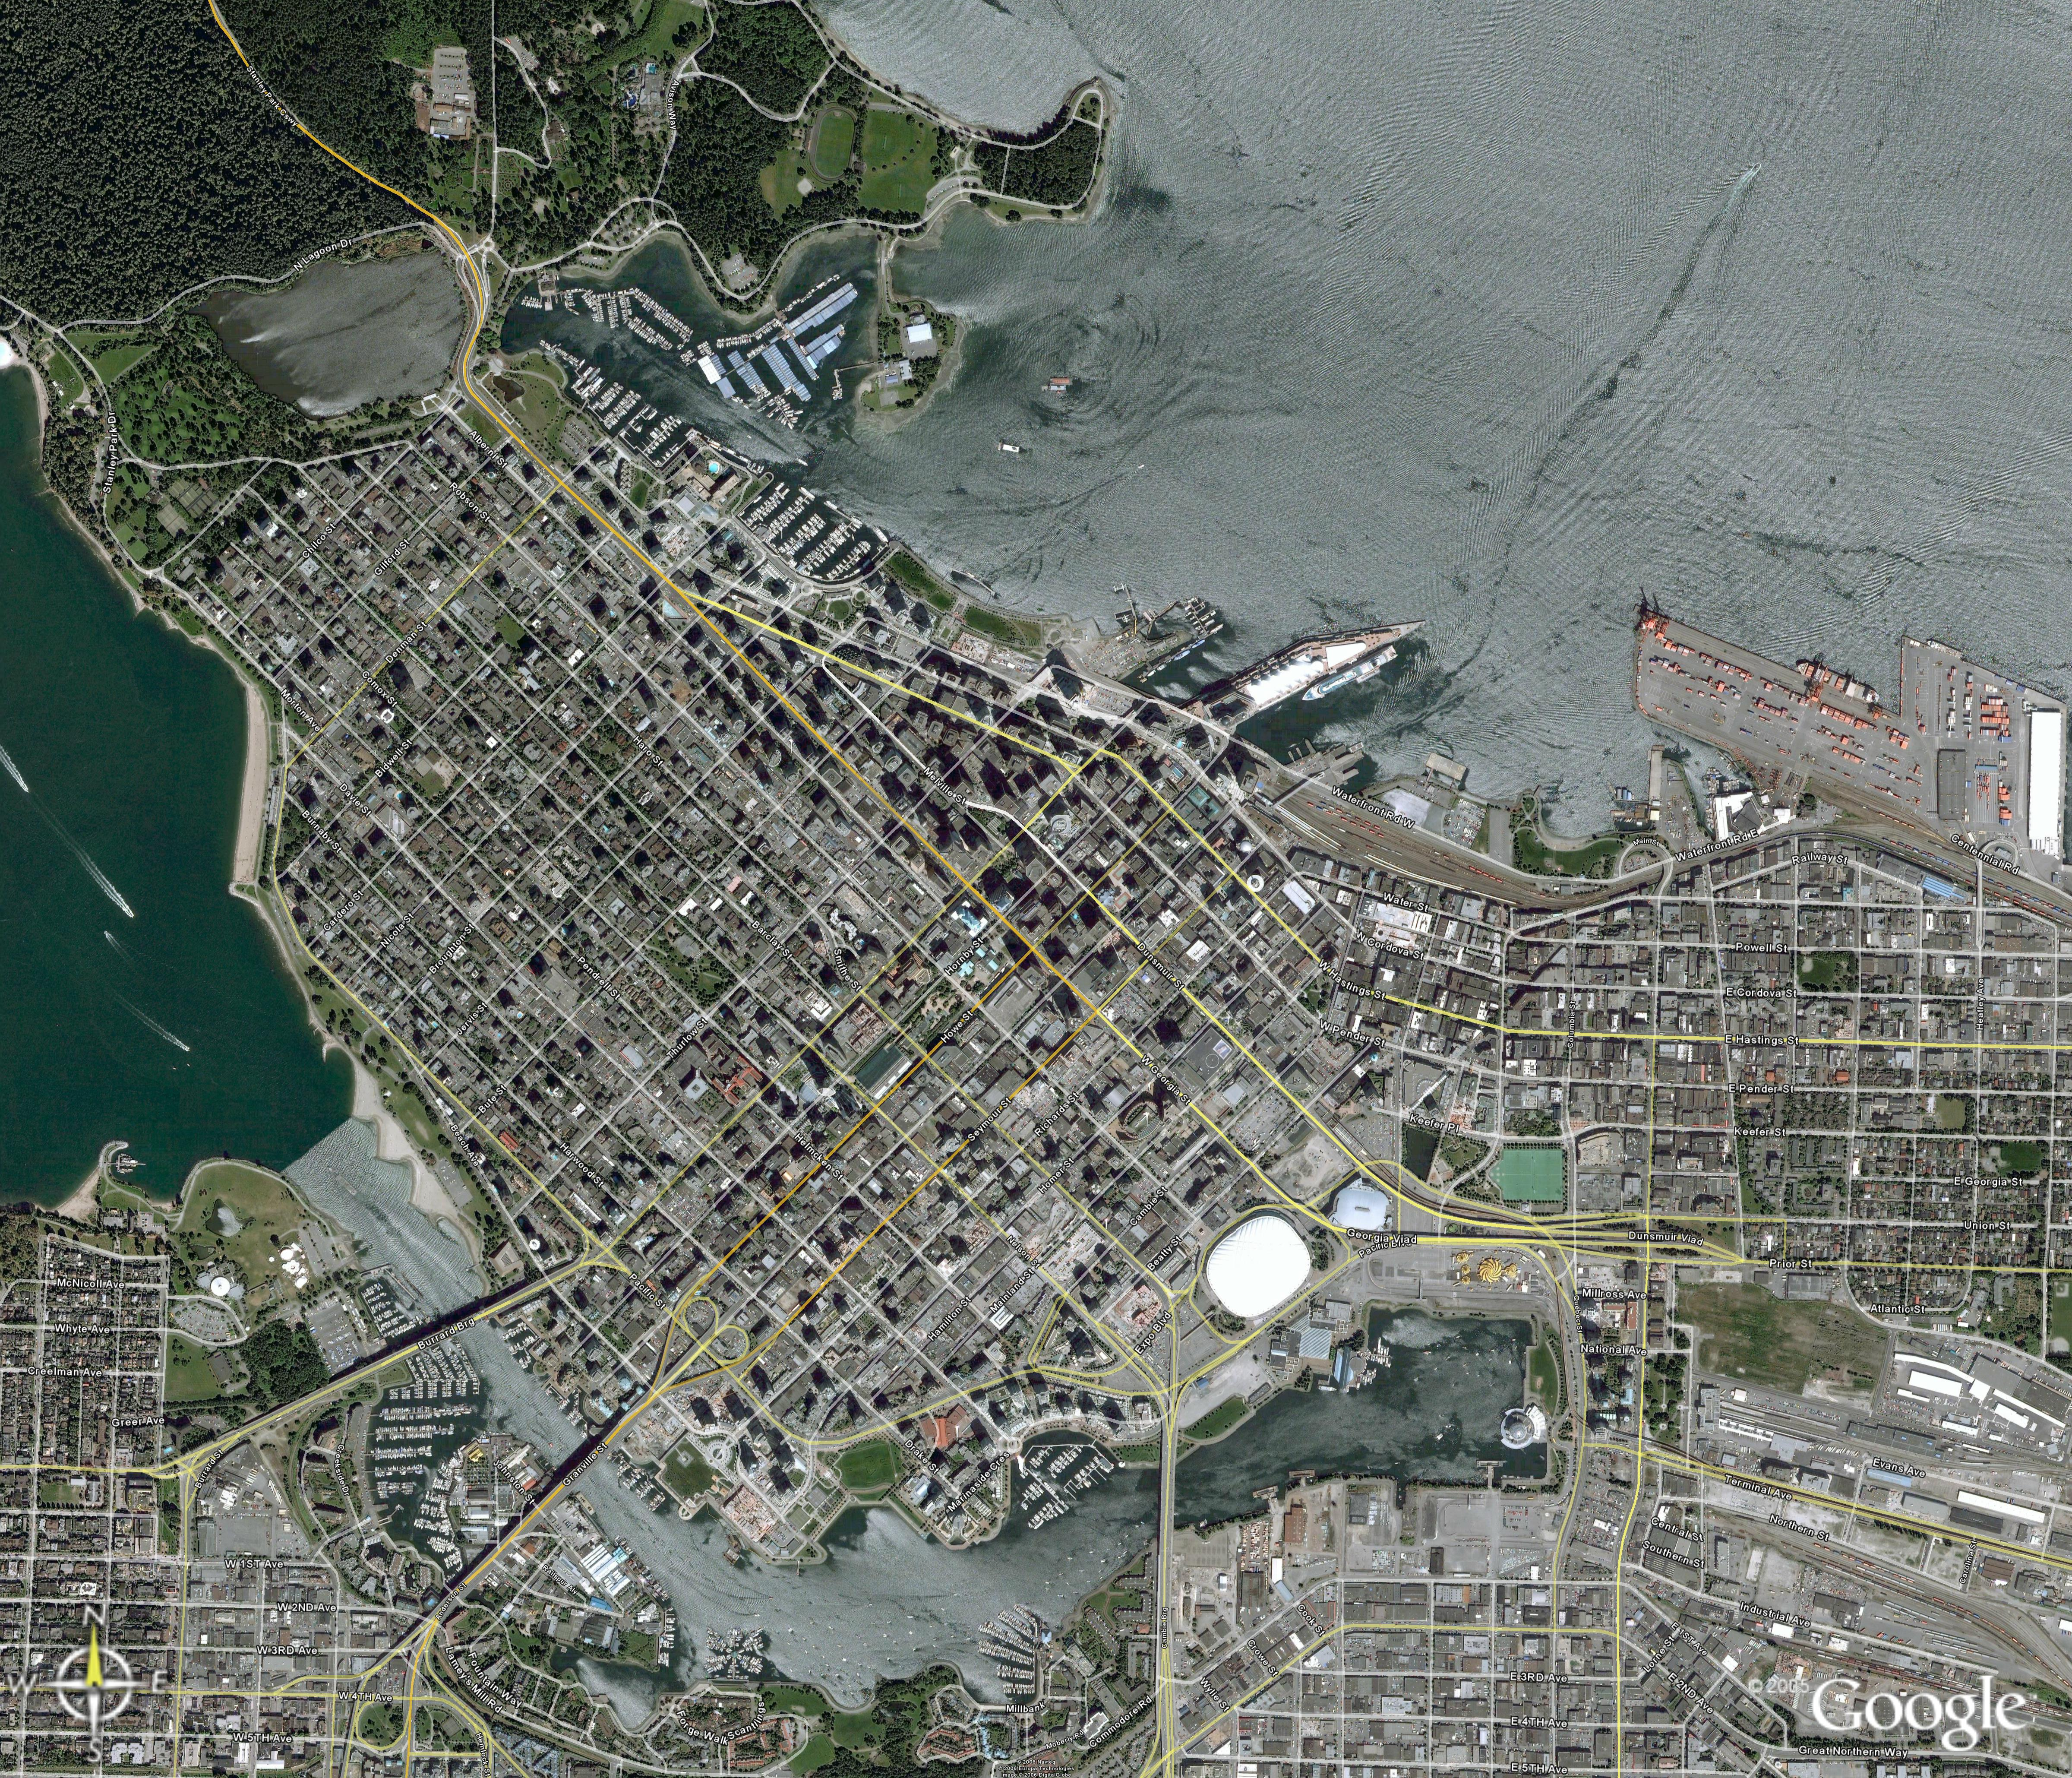 Sauder school of business map - Satelite View Of Downtown Vancouver 4 86 Mb